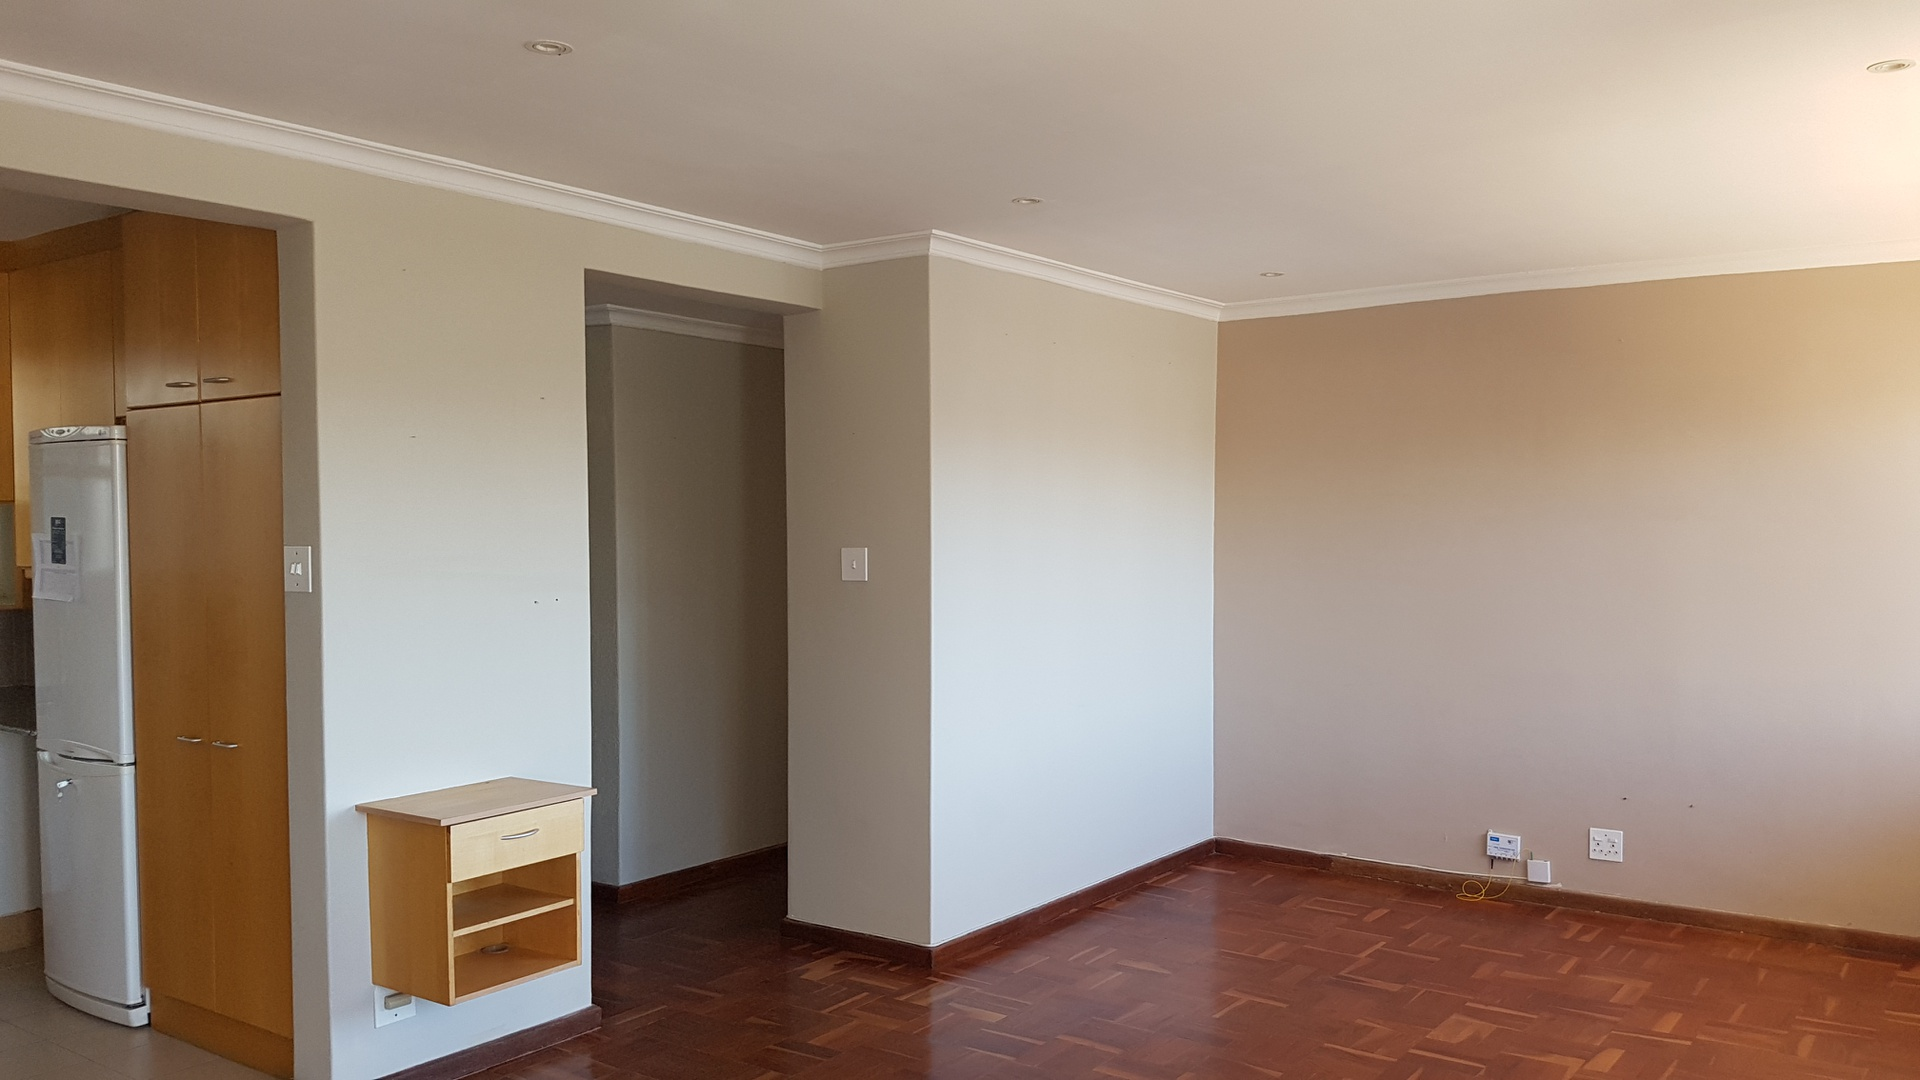 Apartment in Sea Point - Lounge/kitchen area